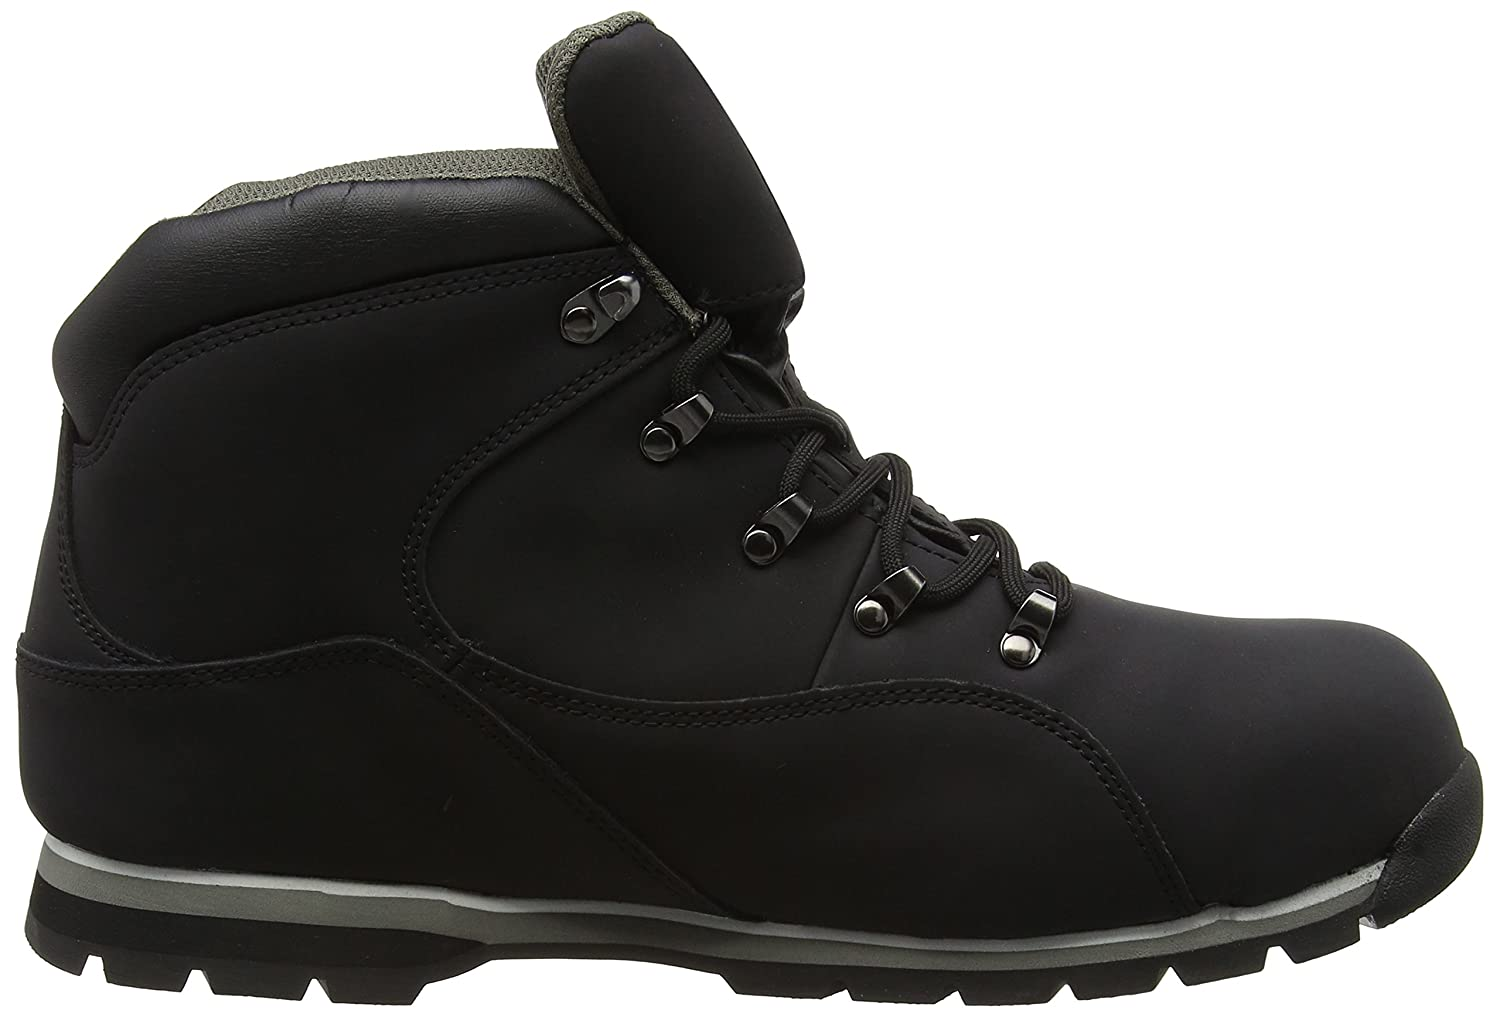 Groundwork Gr66 Unisex Adults Safety Boots